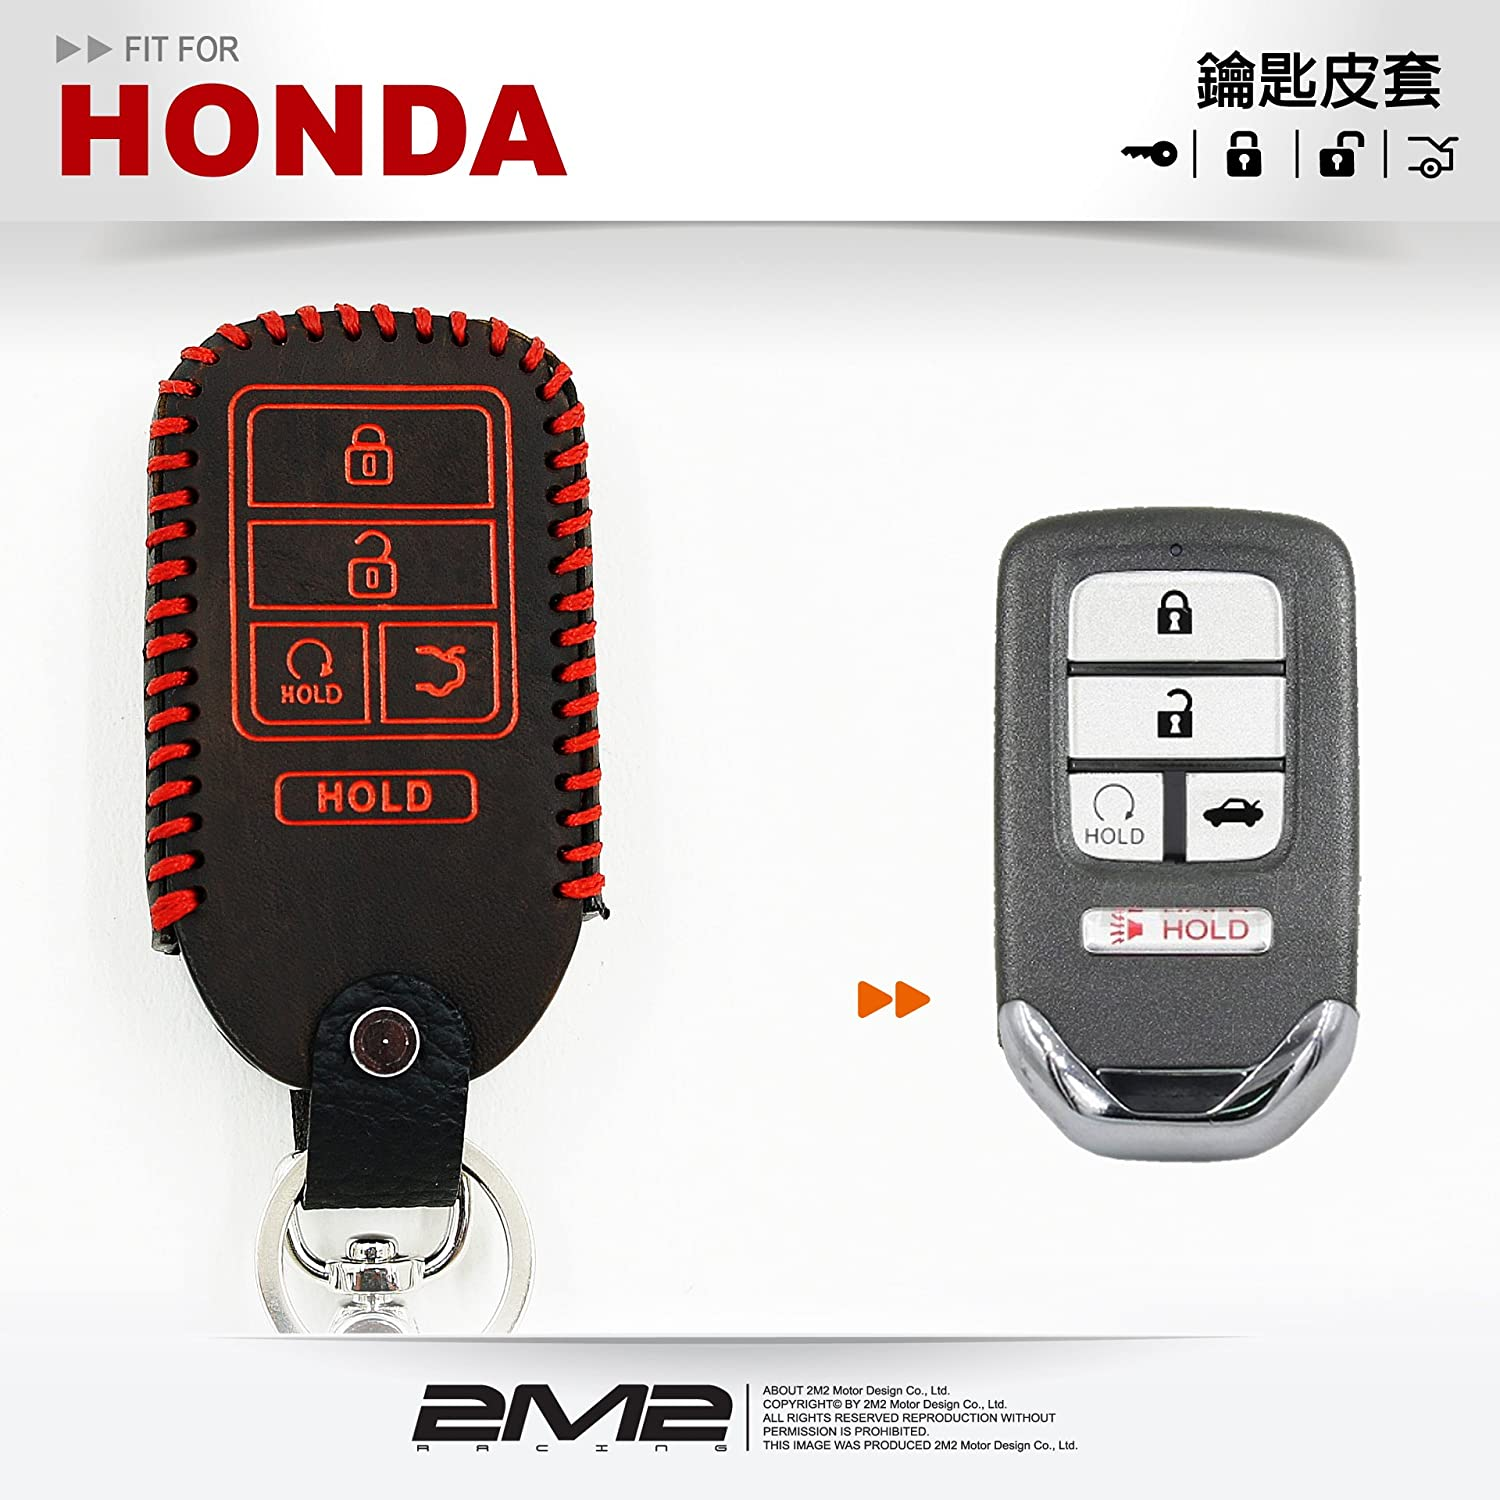 HO06-4B2-16-001 Leather Key fob Holder Case Chain Cover RING FIT For 2017 HONDA PILOT 1+1 TAIWAN